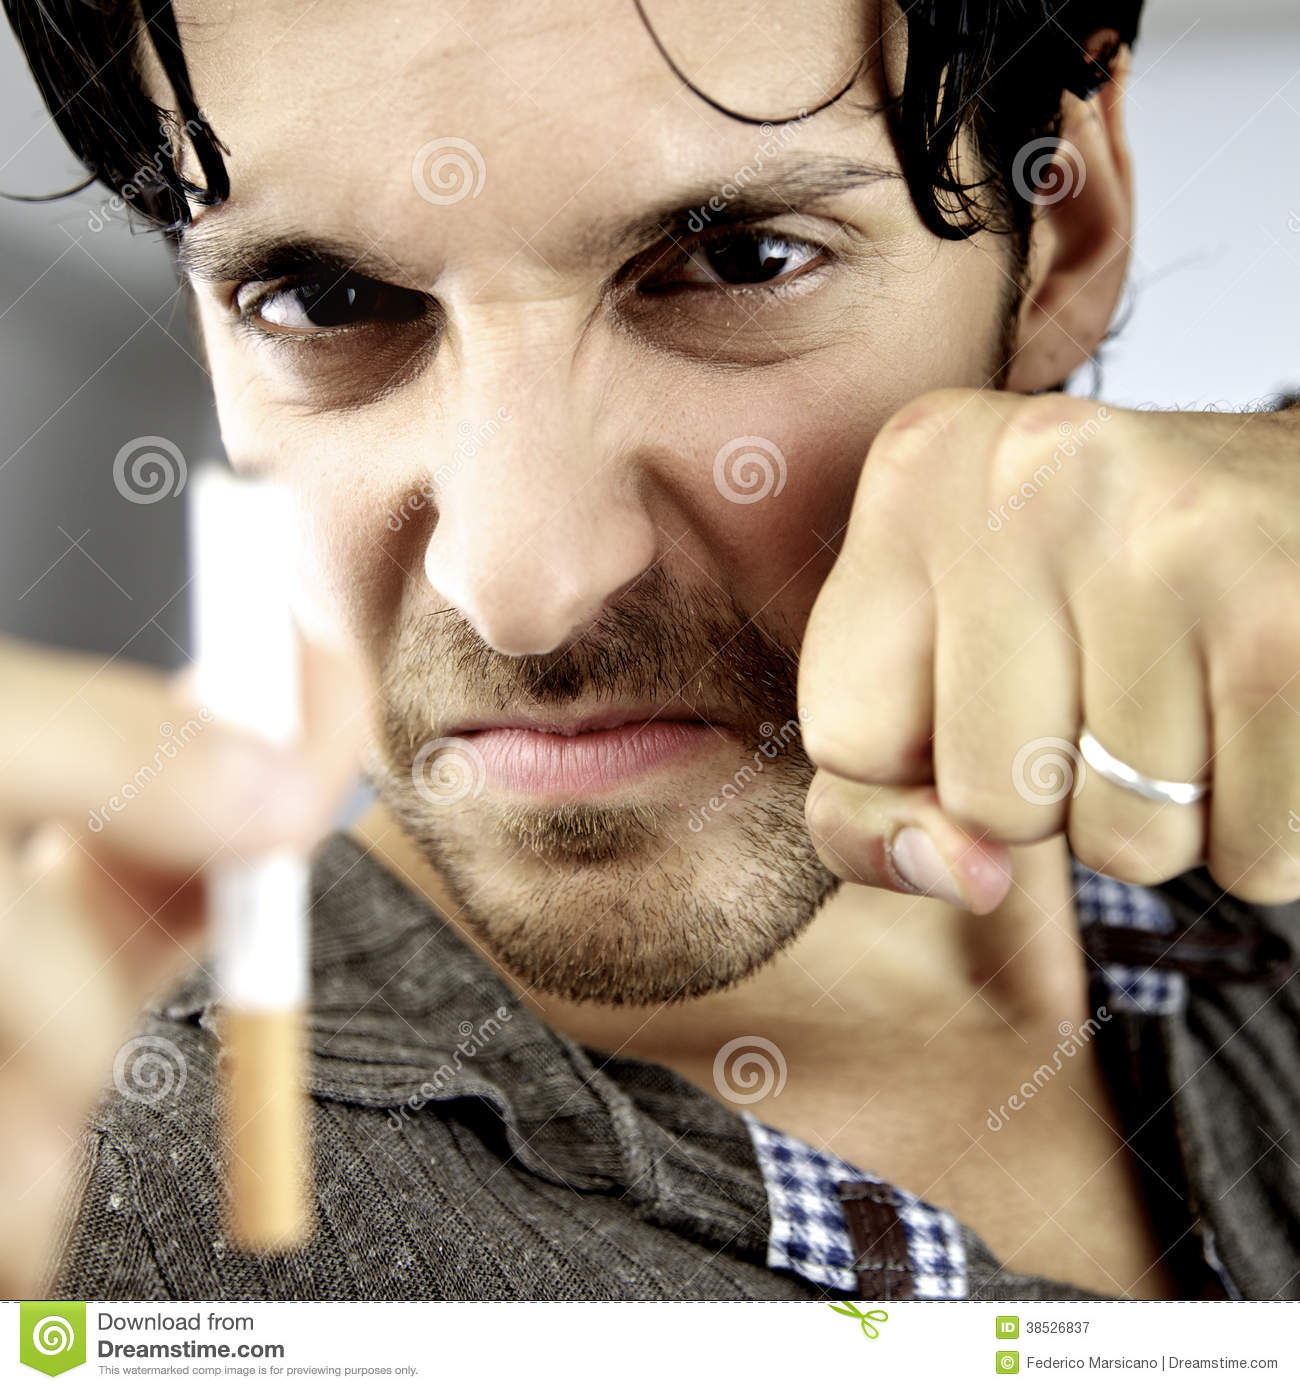 I will fight my battle against cancer I will stop smoking